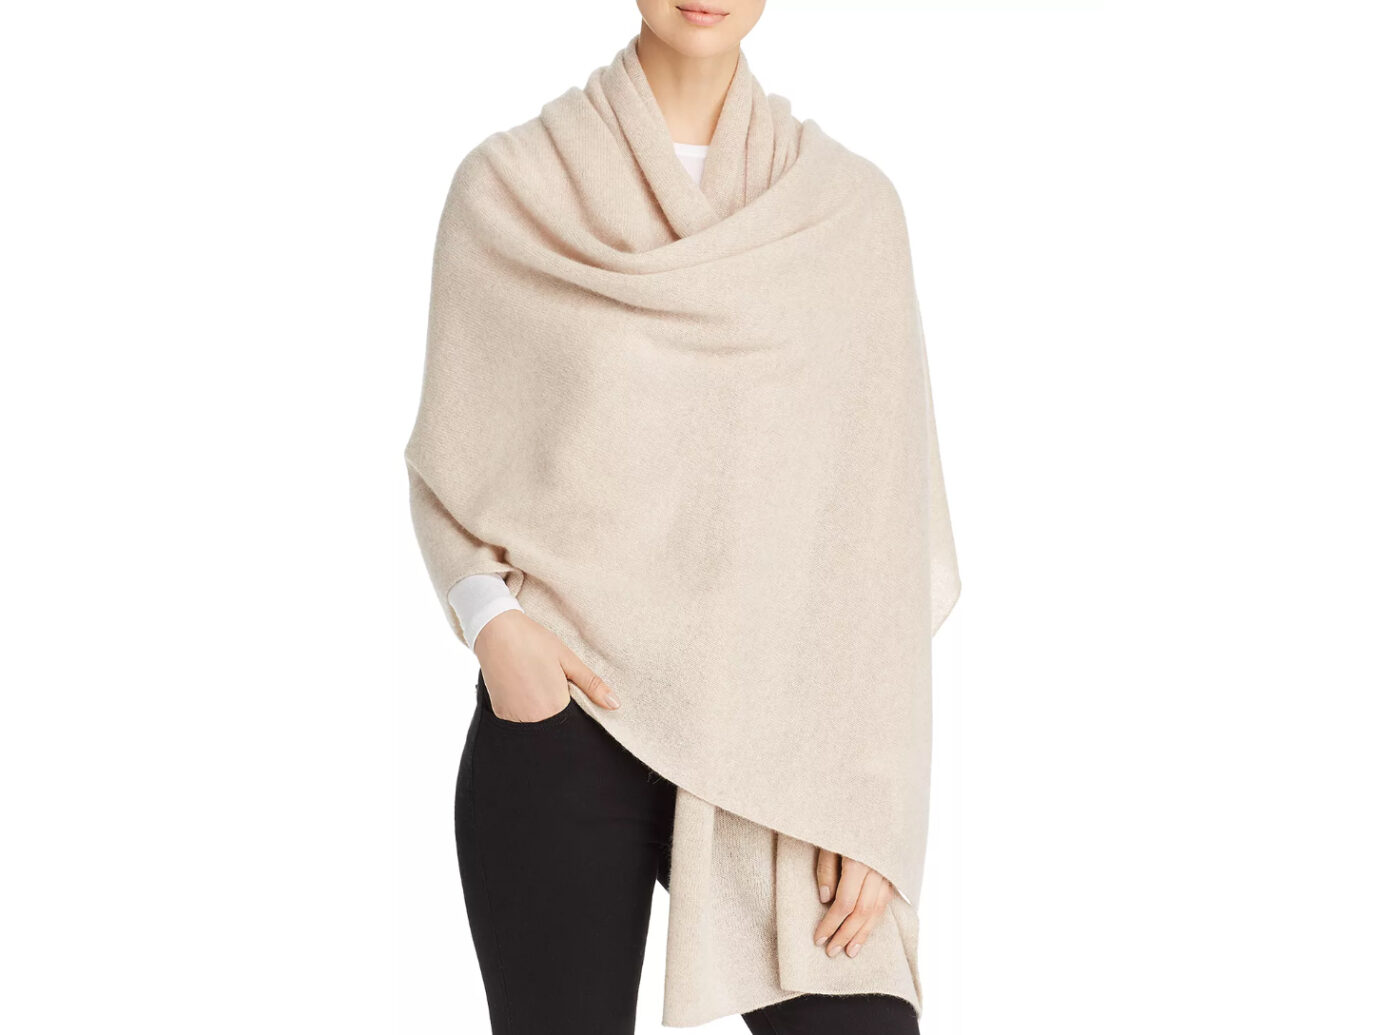 C by Bloomingdale's Cashmere Travel Wrap (Heather oatmeal)